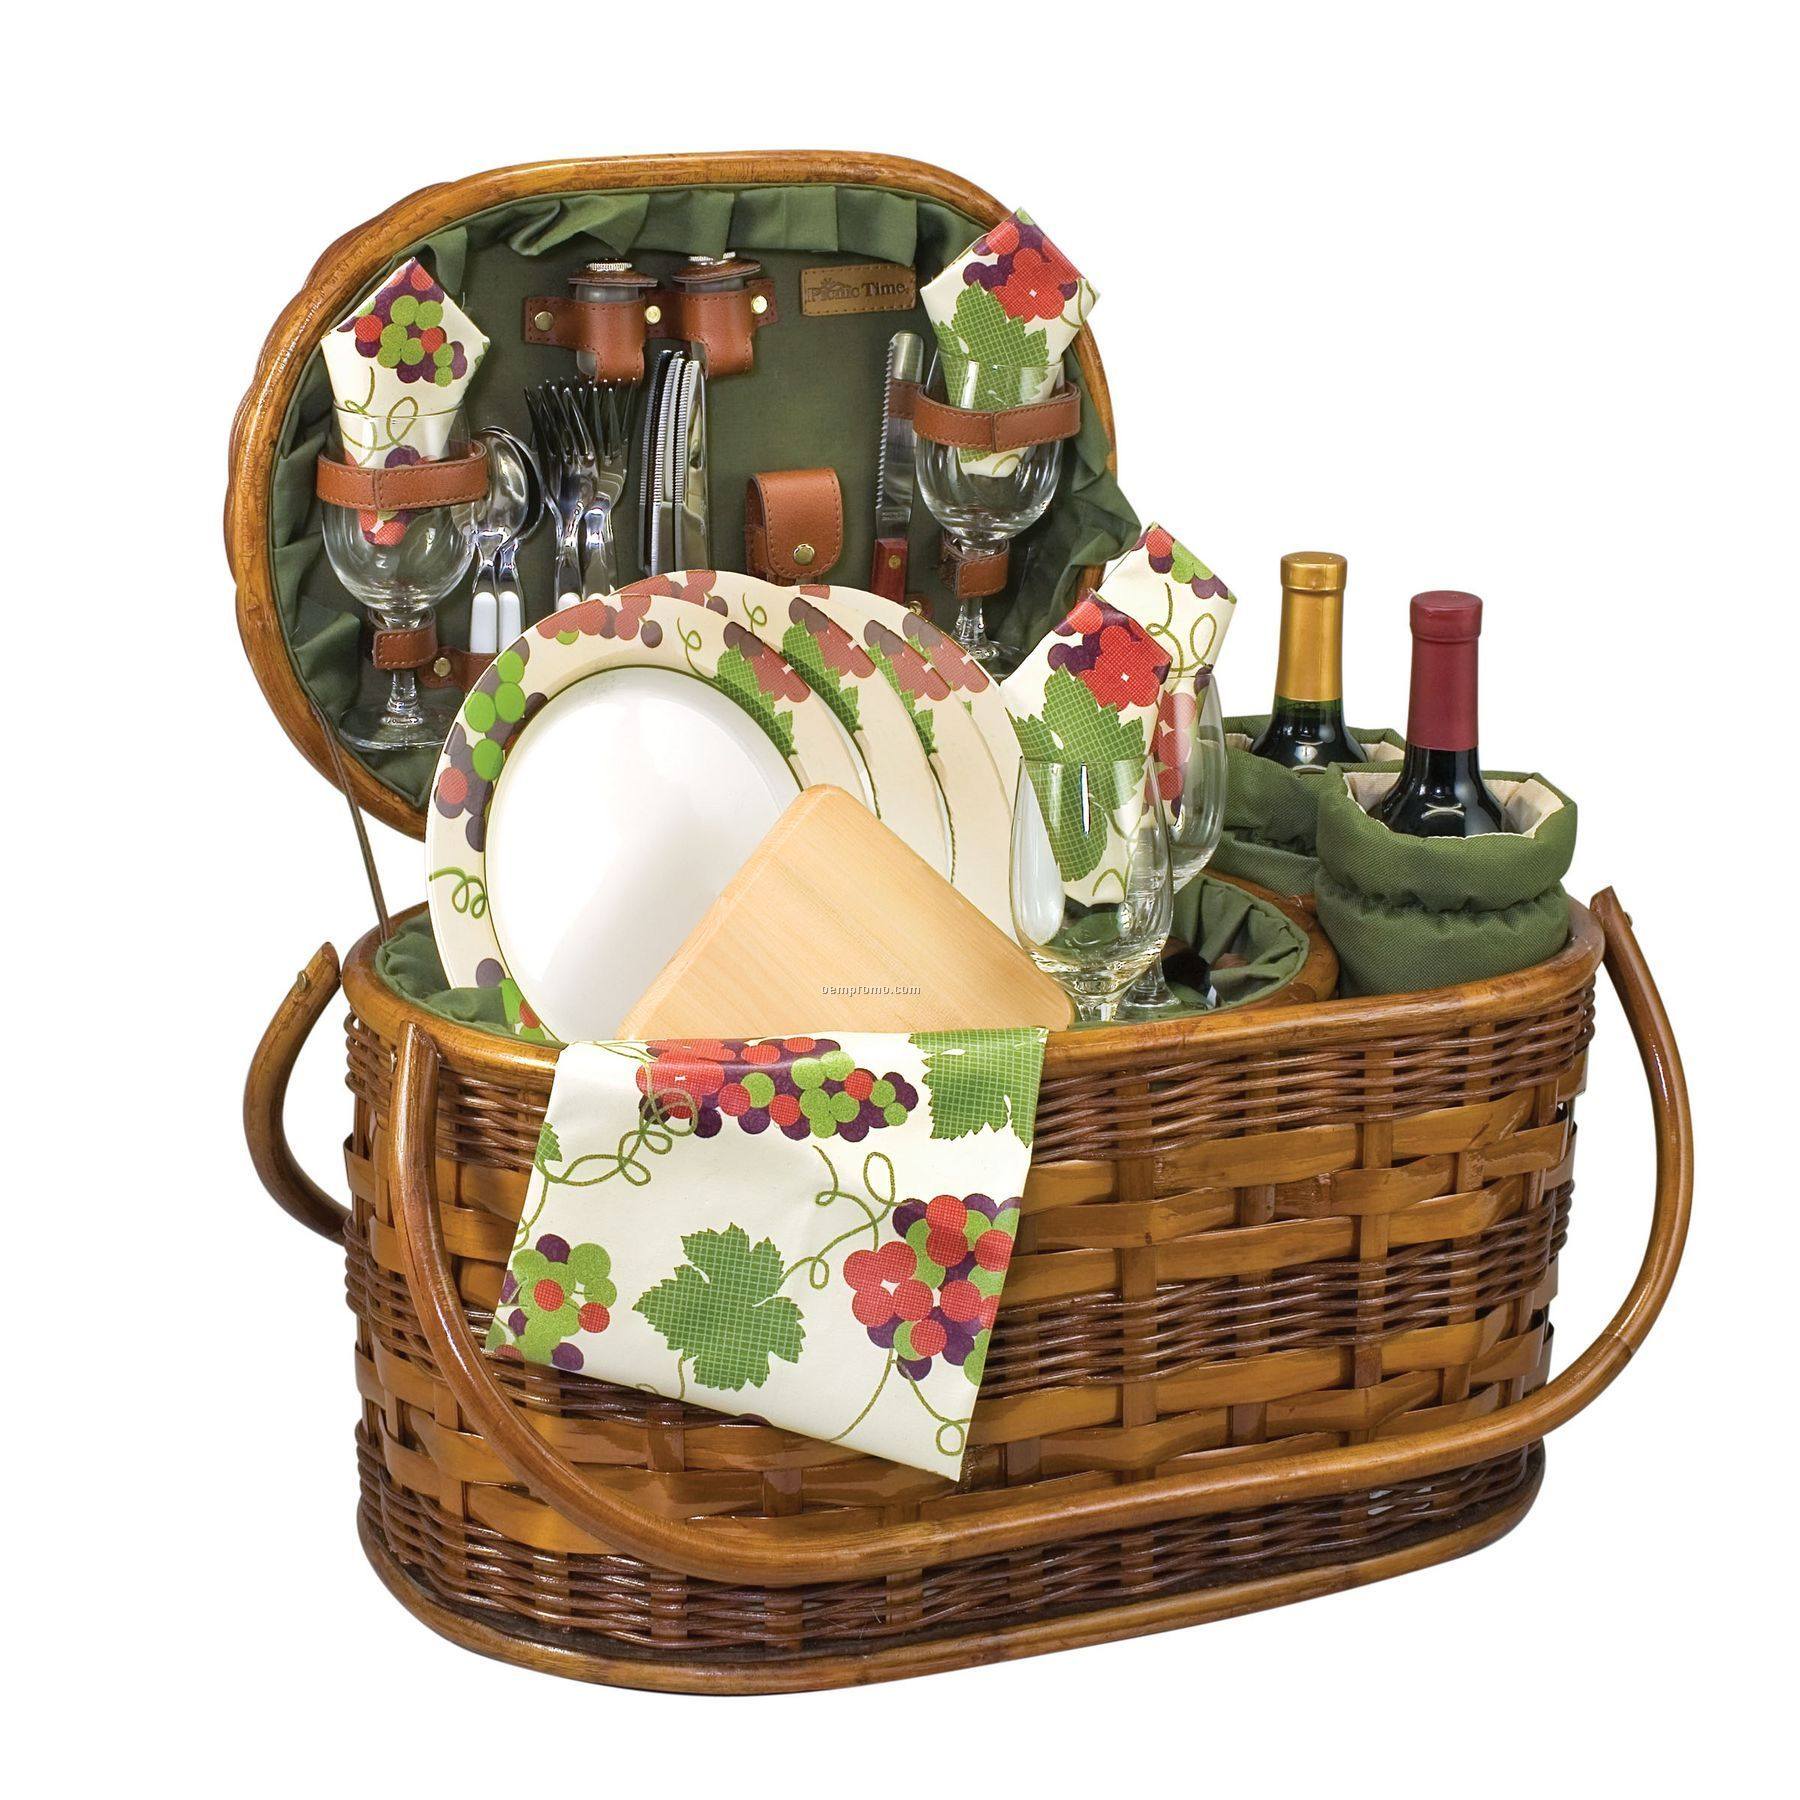 Cheap Picnic Basket For 4 : Merlot quot deluxe oval picnic basket w svc for grape